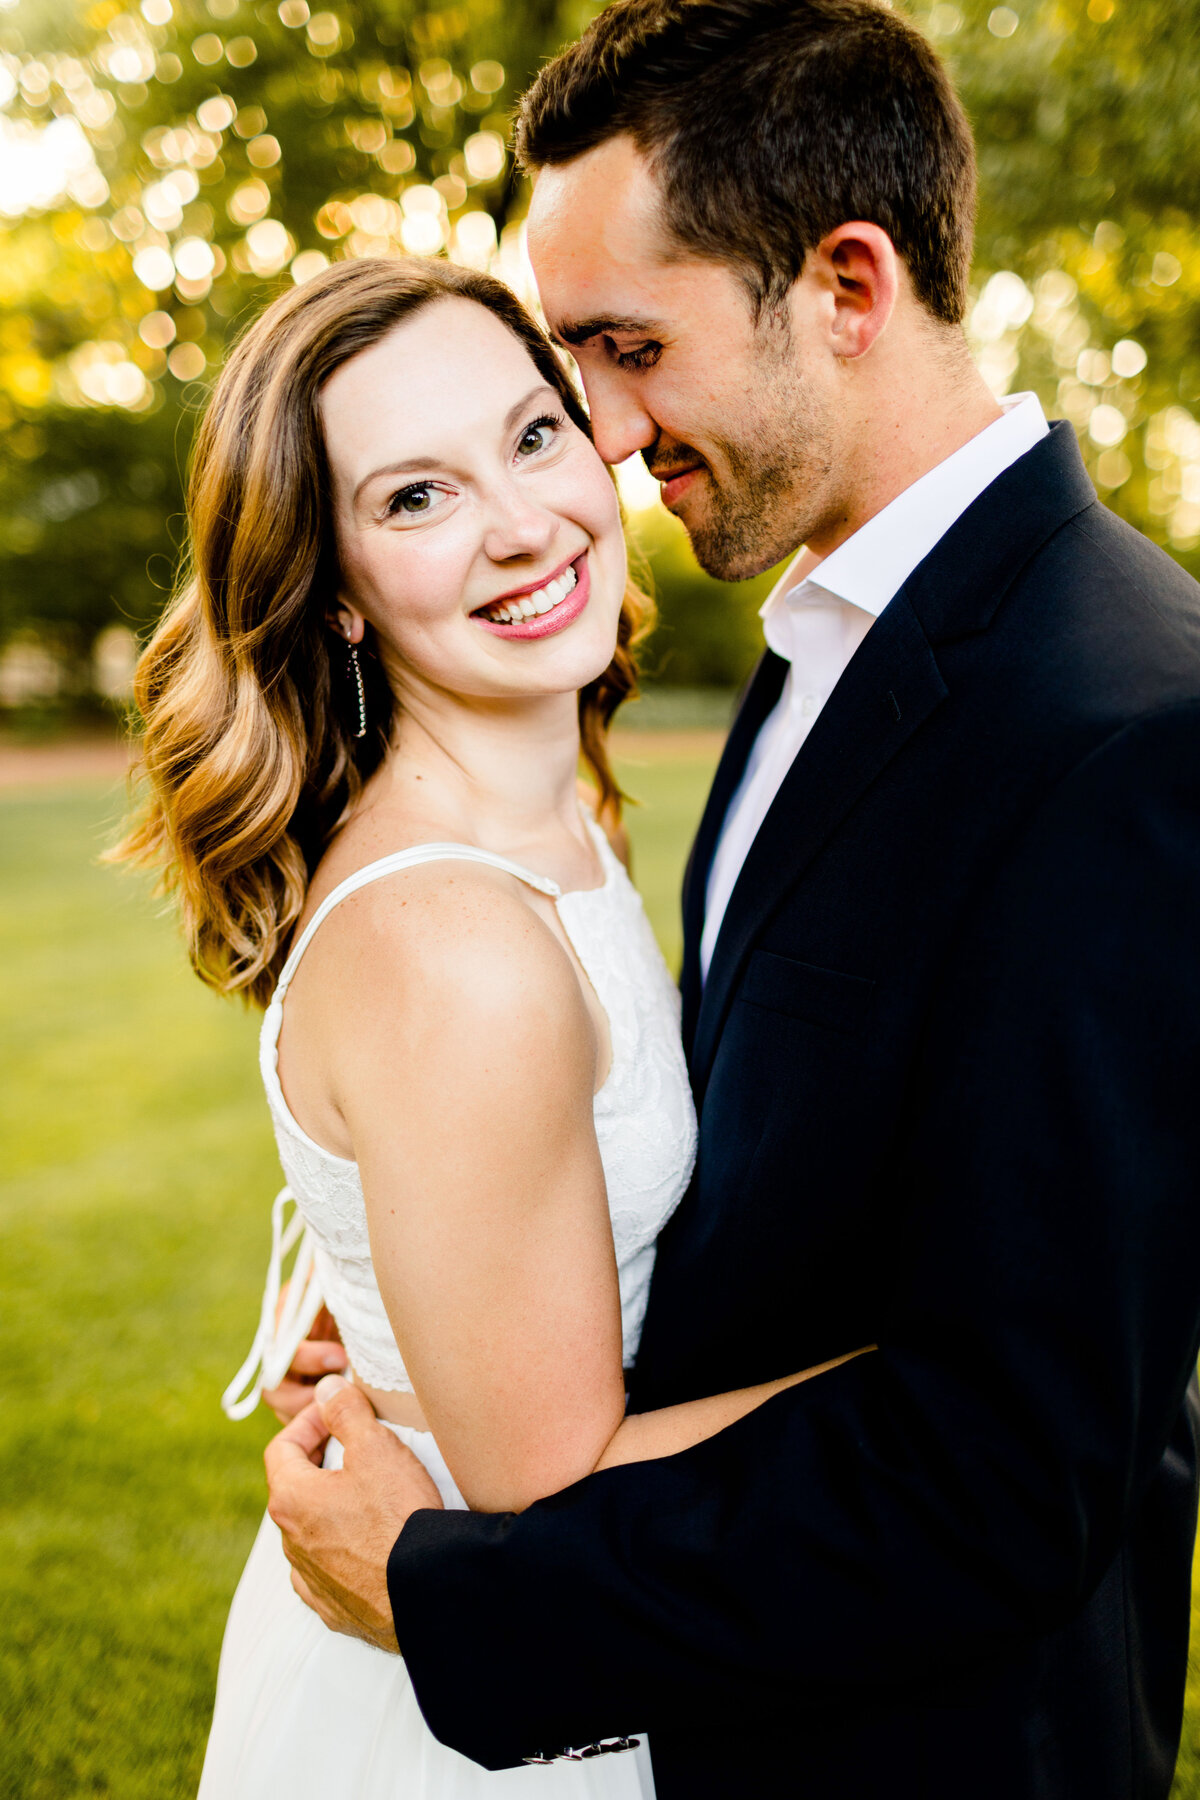 Caitlin and Luke Photography Wedding Engagement Luxury Illinois Destination Colorful Bright Joyful Cheerful Photographer 301